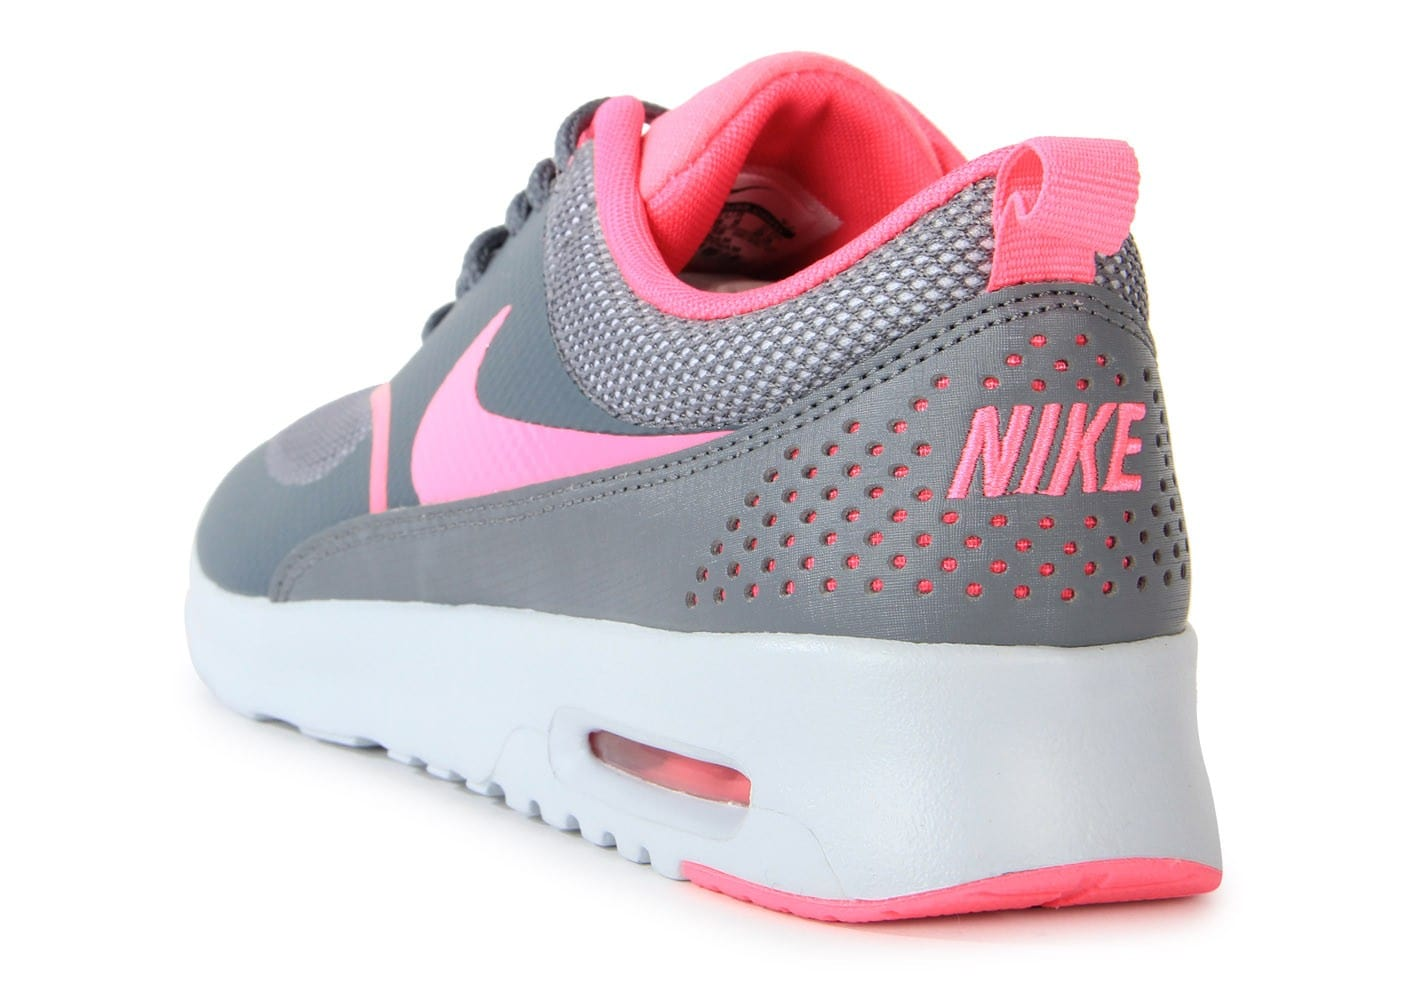 nike air max thea cool grey rose chaussures chaussures. Black Bedroom Furniture Sets. Home Design Ideas